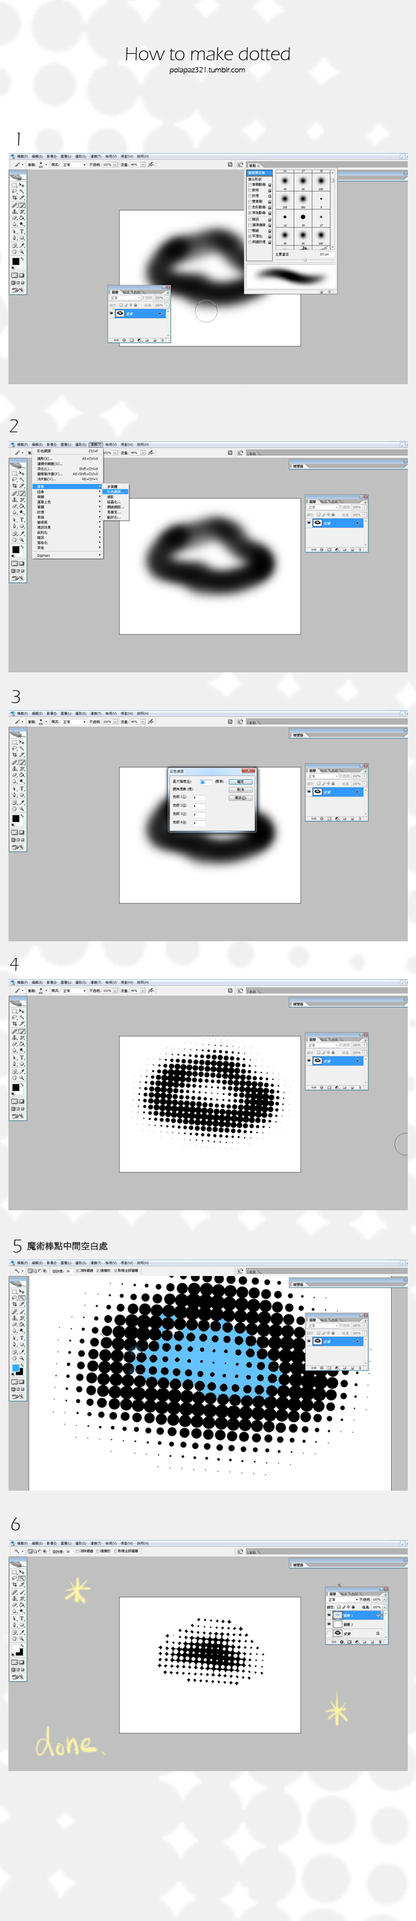 How to make dotted brush. by freestarisis